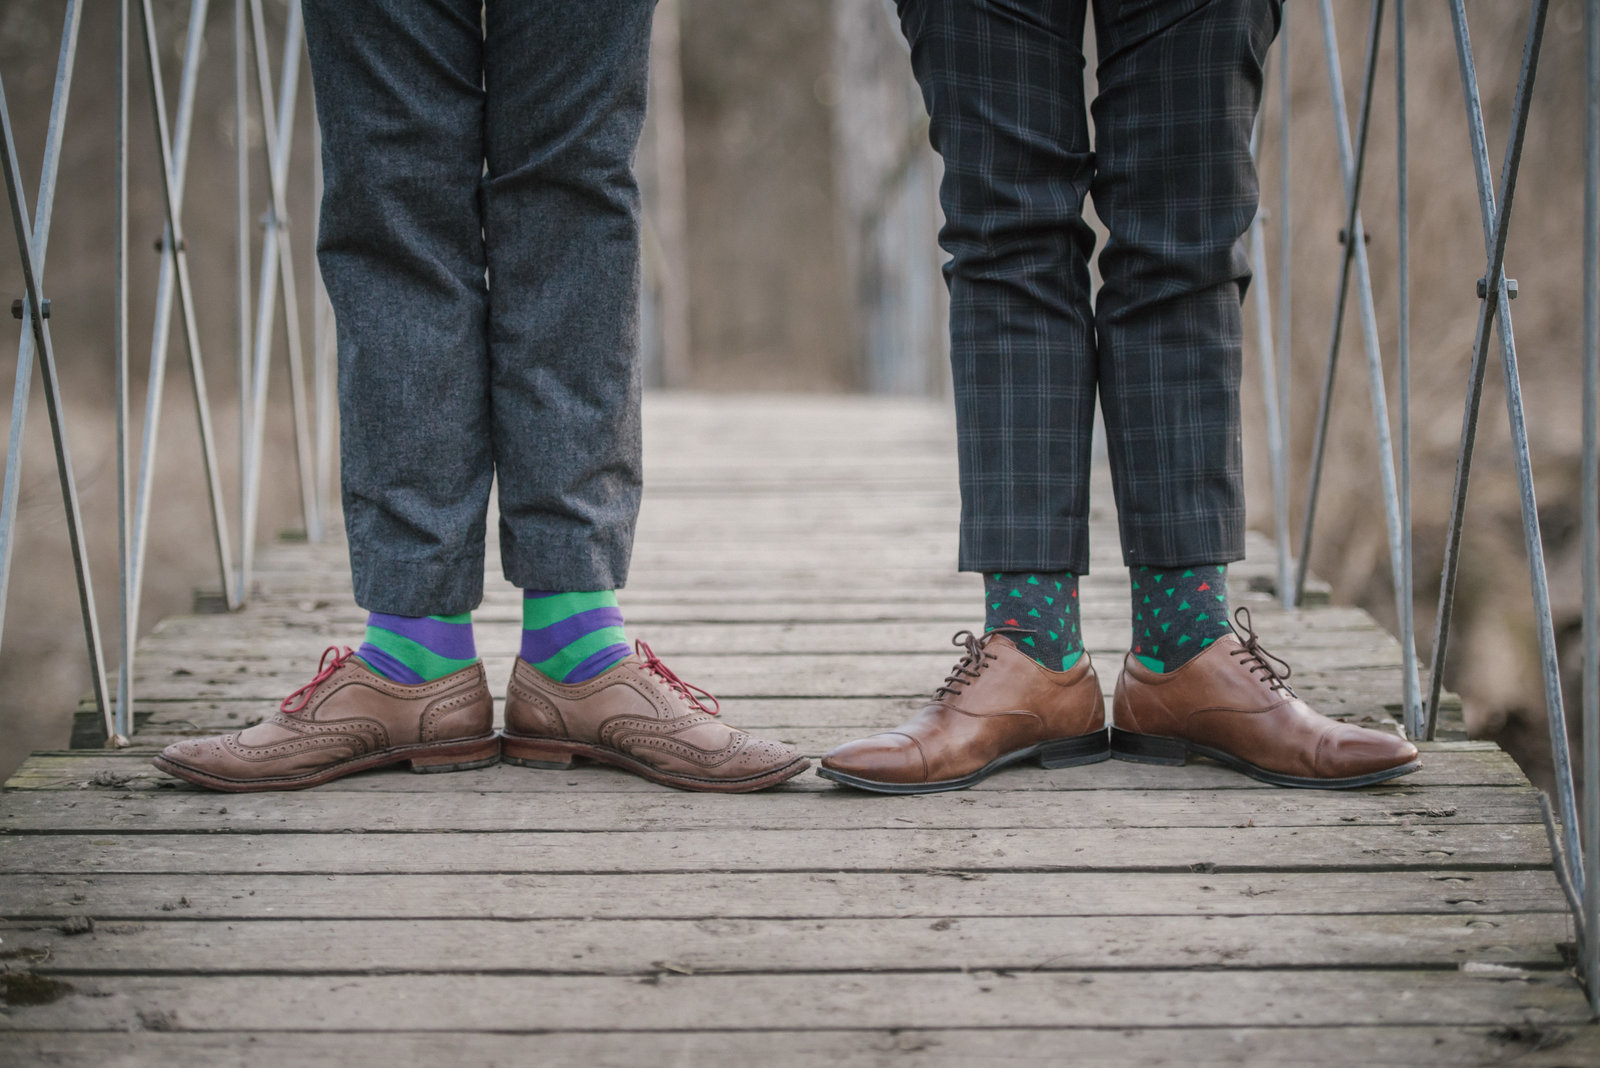 photo of couple's cool shoes and socks